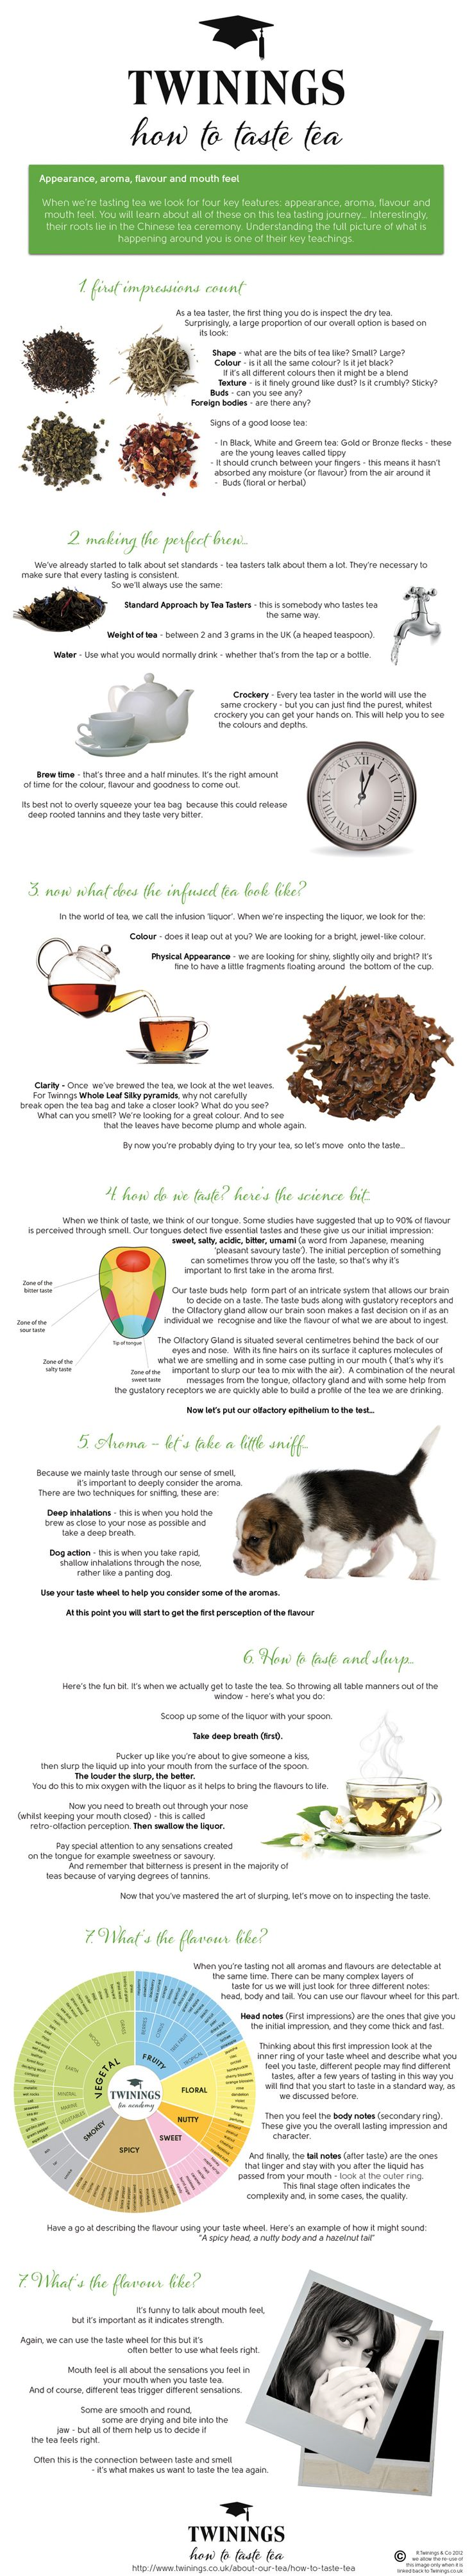 """How to taste tea"" Infographic    Here is an HTML version: http://www.twinings.co.uk/about-our-tea/how-to-taste-tea"